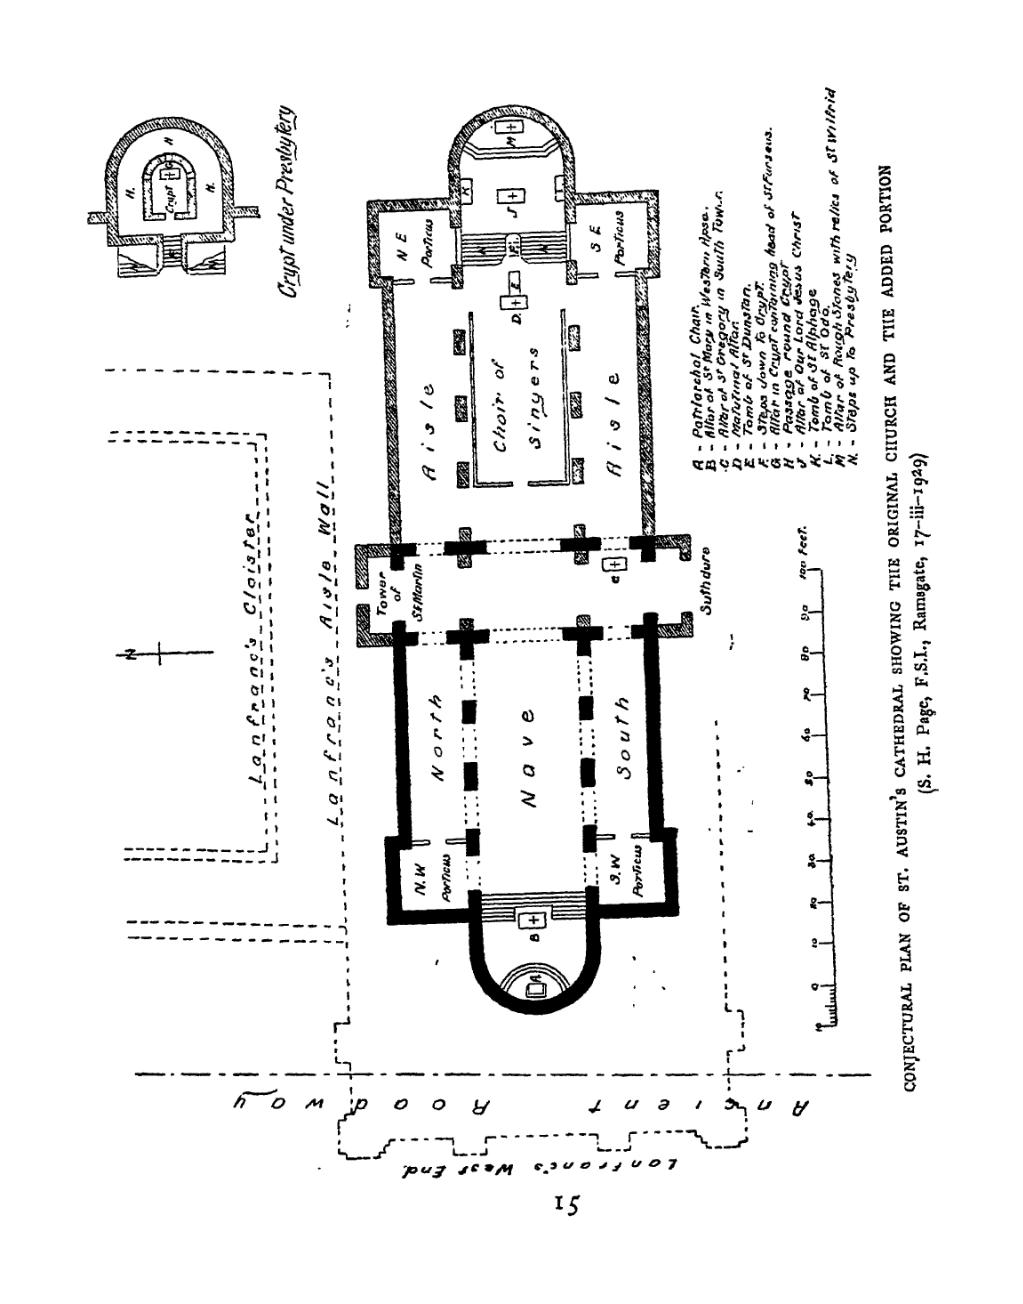 Pagethe saxon cathedral at canterbury and the saxon saints buried pagethe saxon cathedral at canterbury and the saxon saints buried thereinvu45 wikisource the free online library sciox Gallery